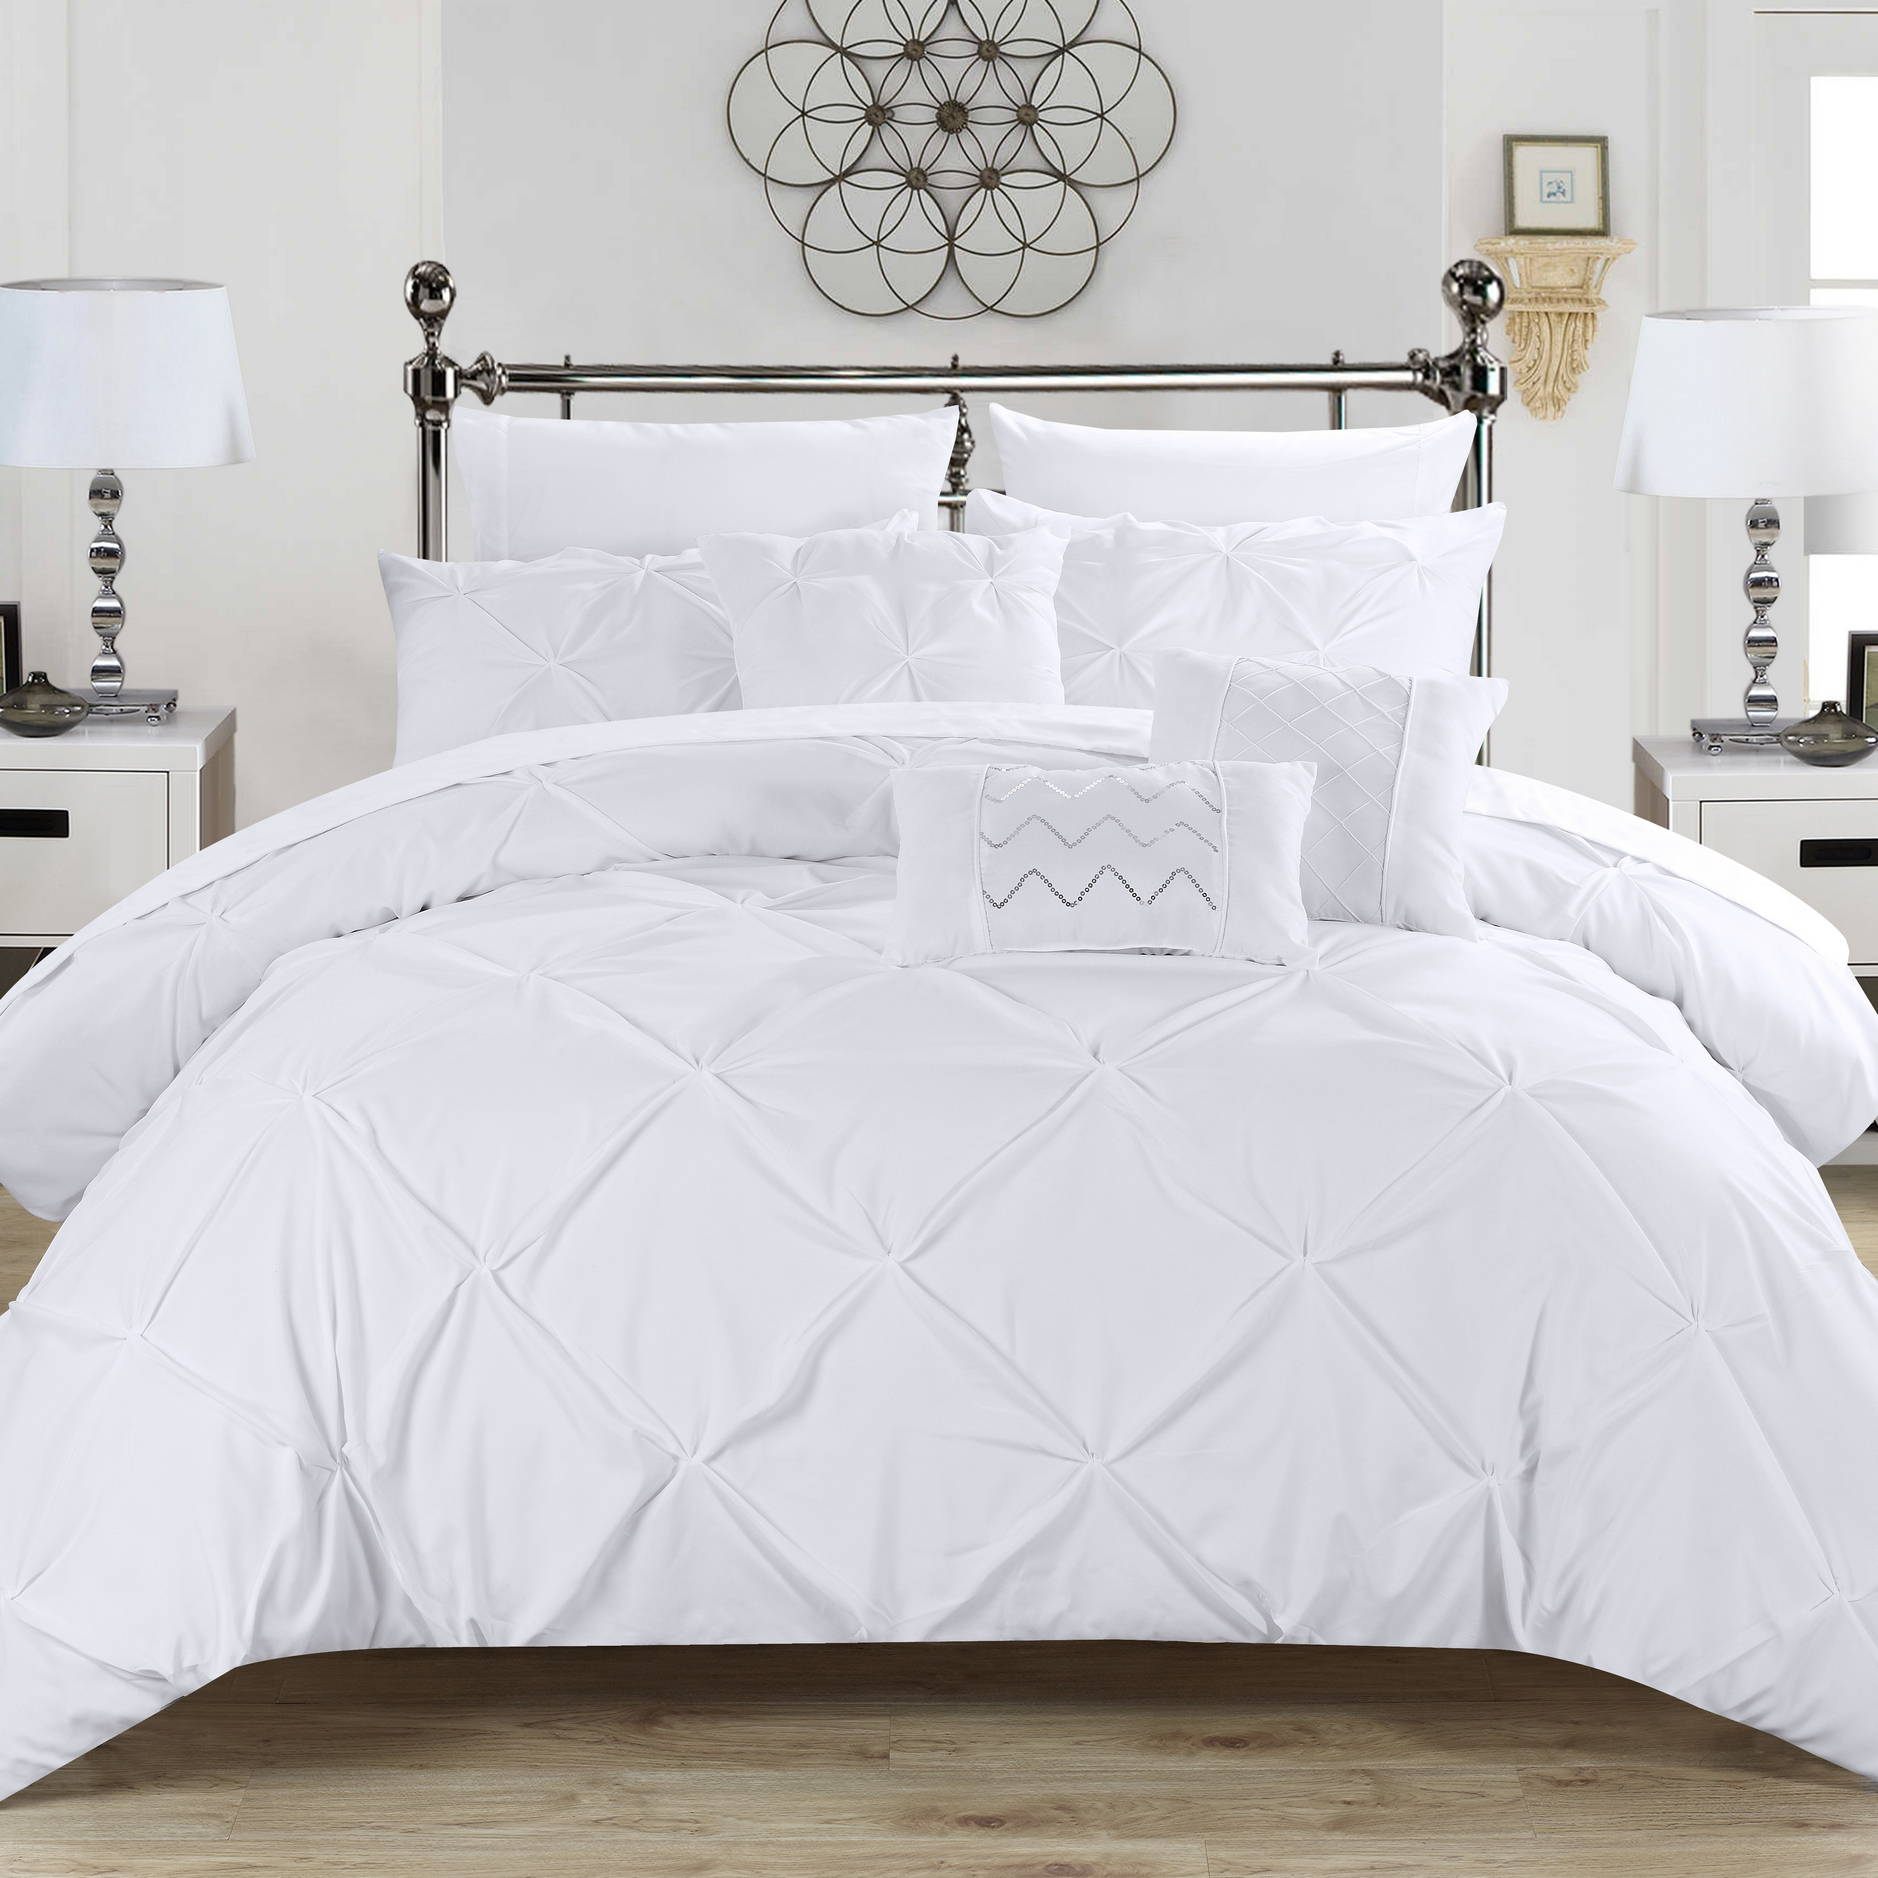 A bed with the white Chic Home Hannah pinch pleat comforter set and decorative pillows